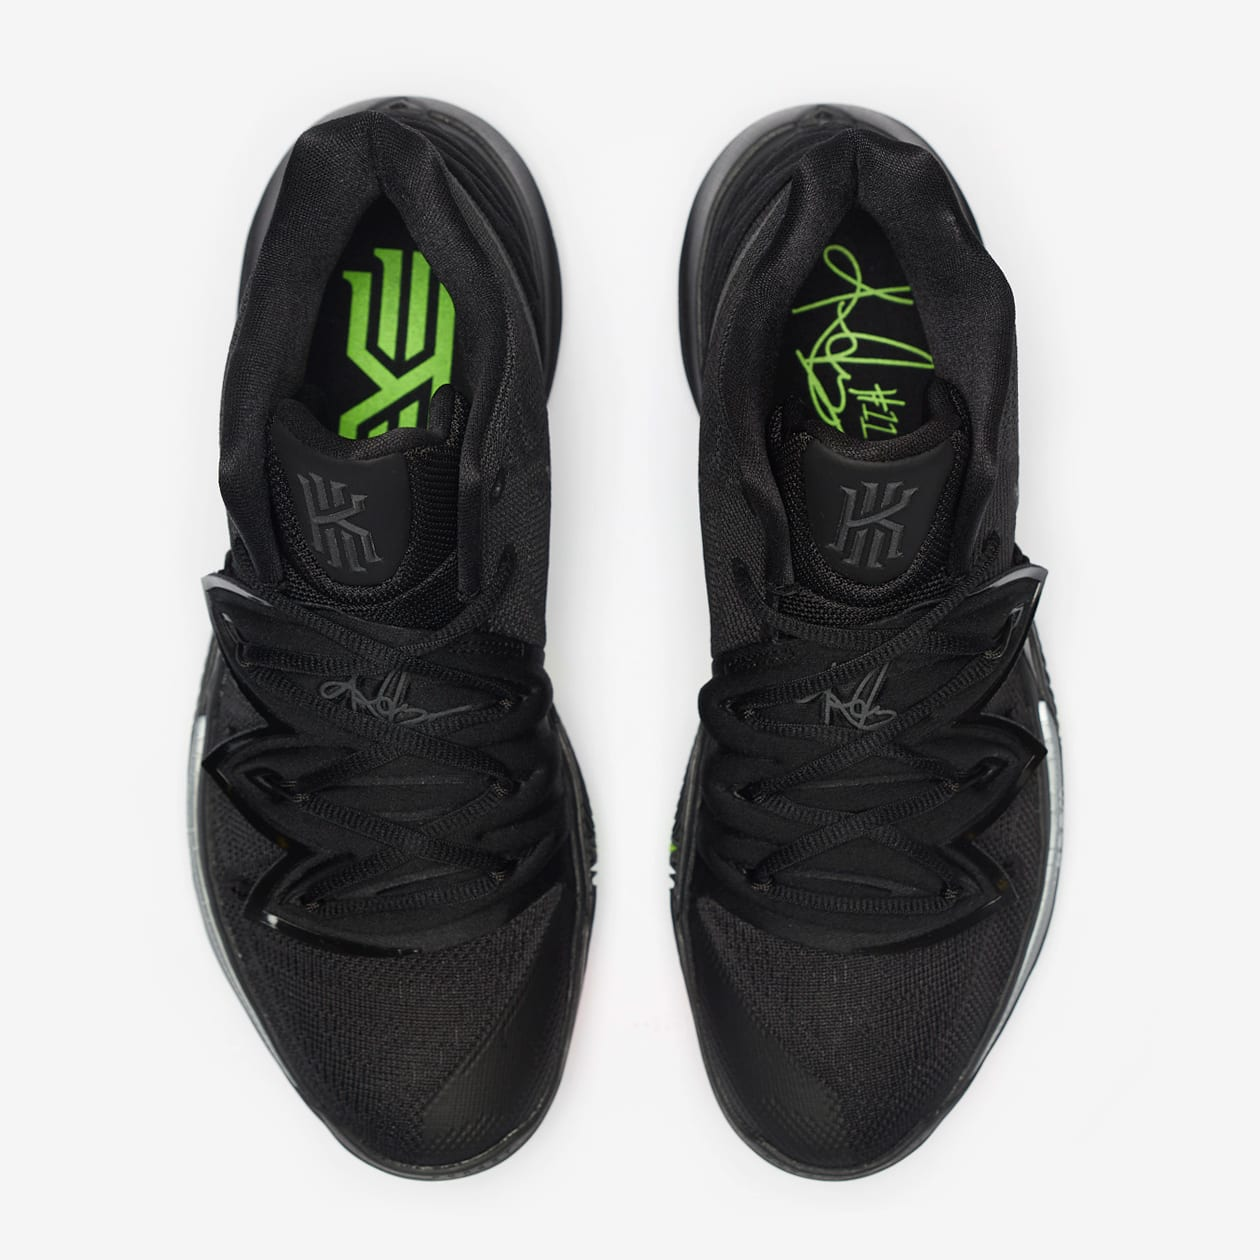 Nike Kyrie 5 Black Rainbow Release Date AO2918-001 Top